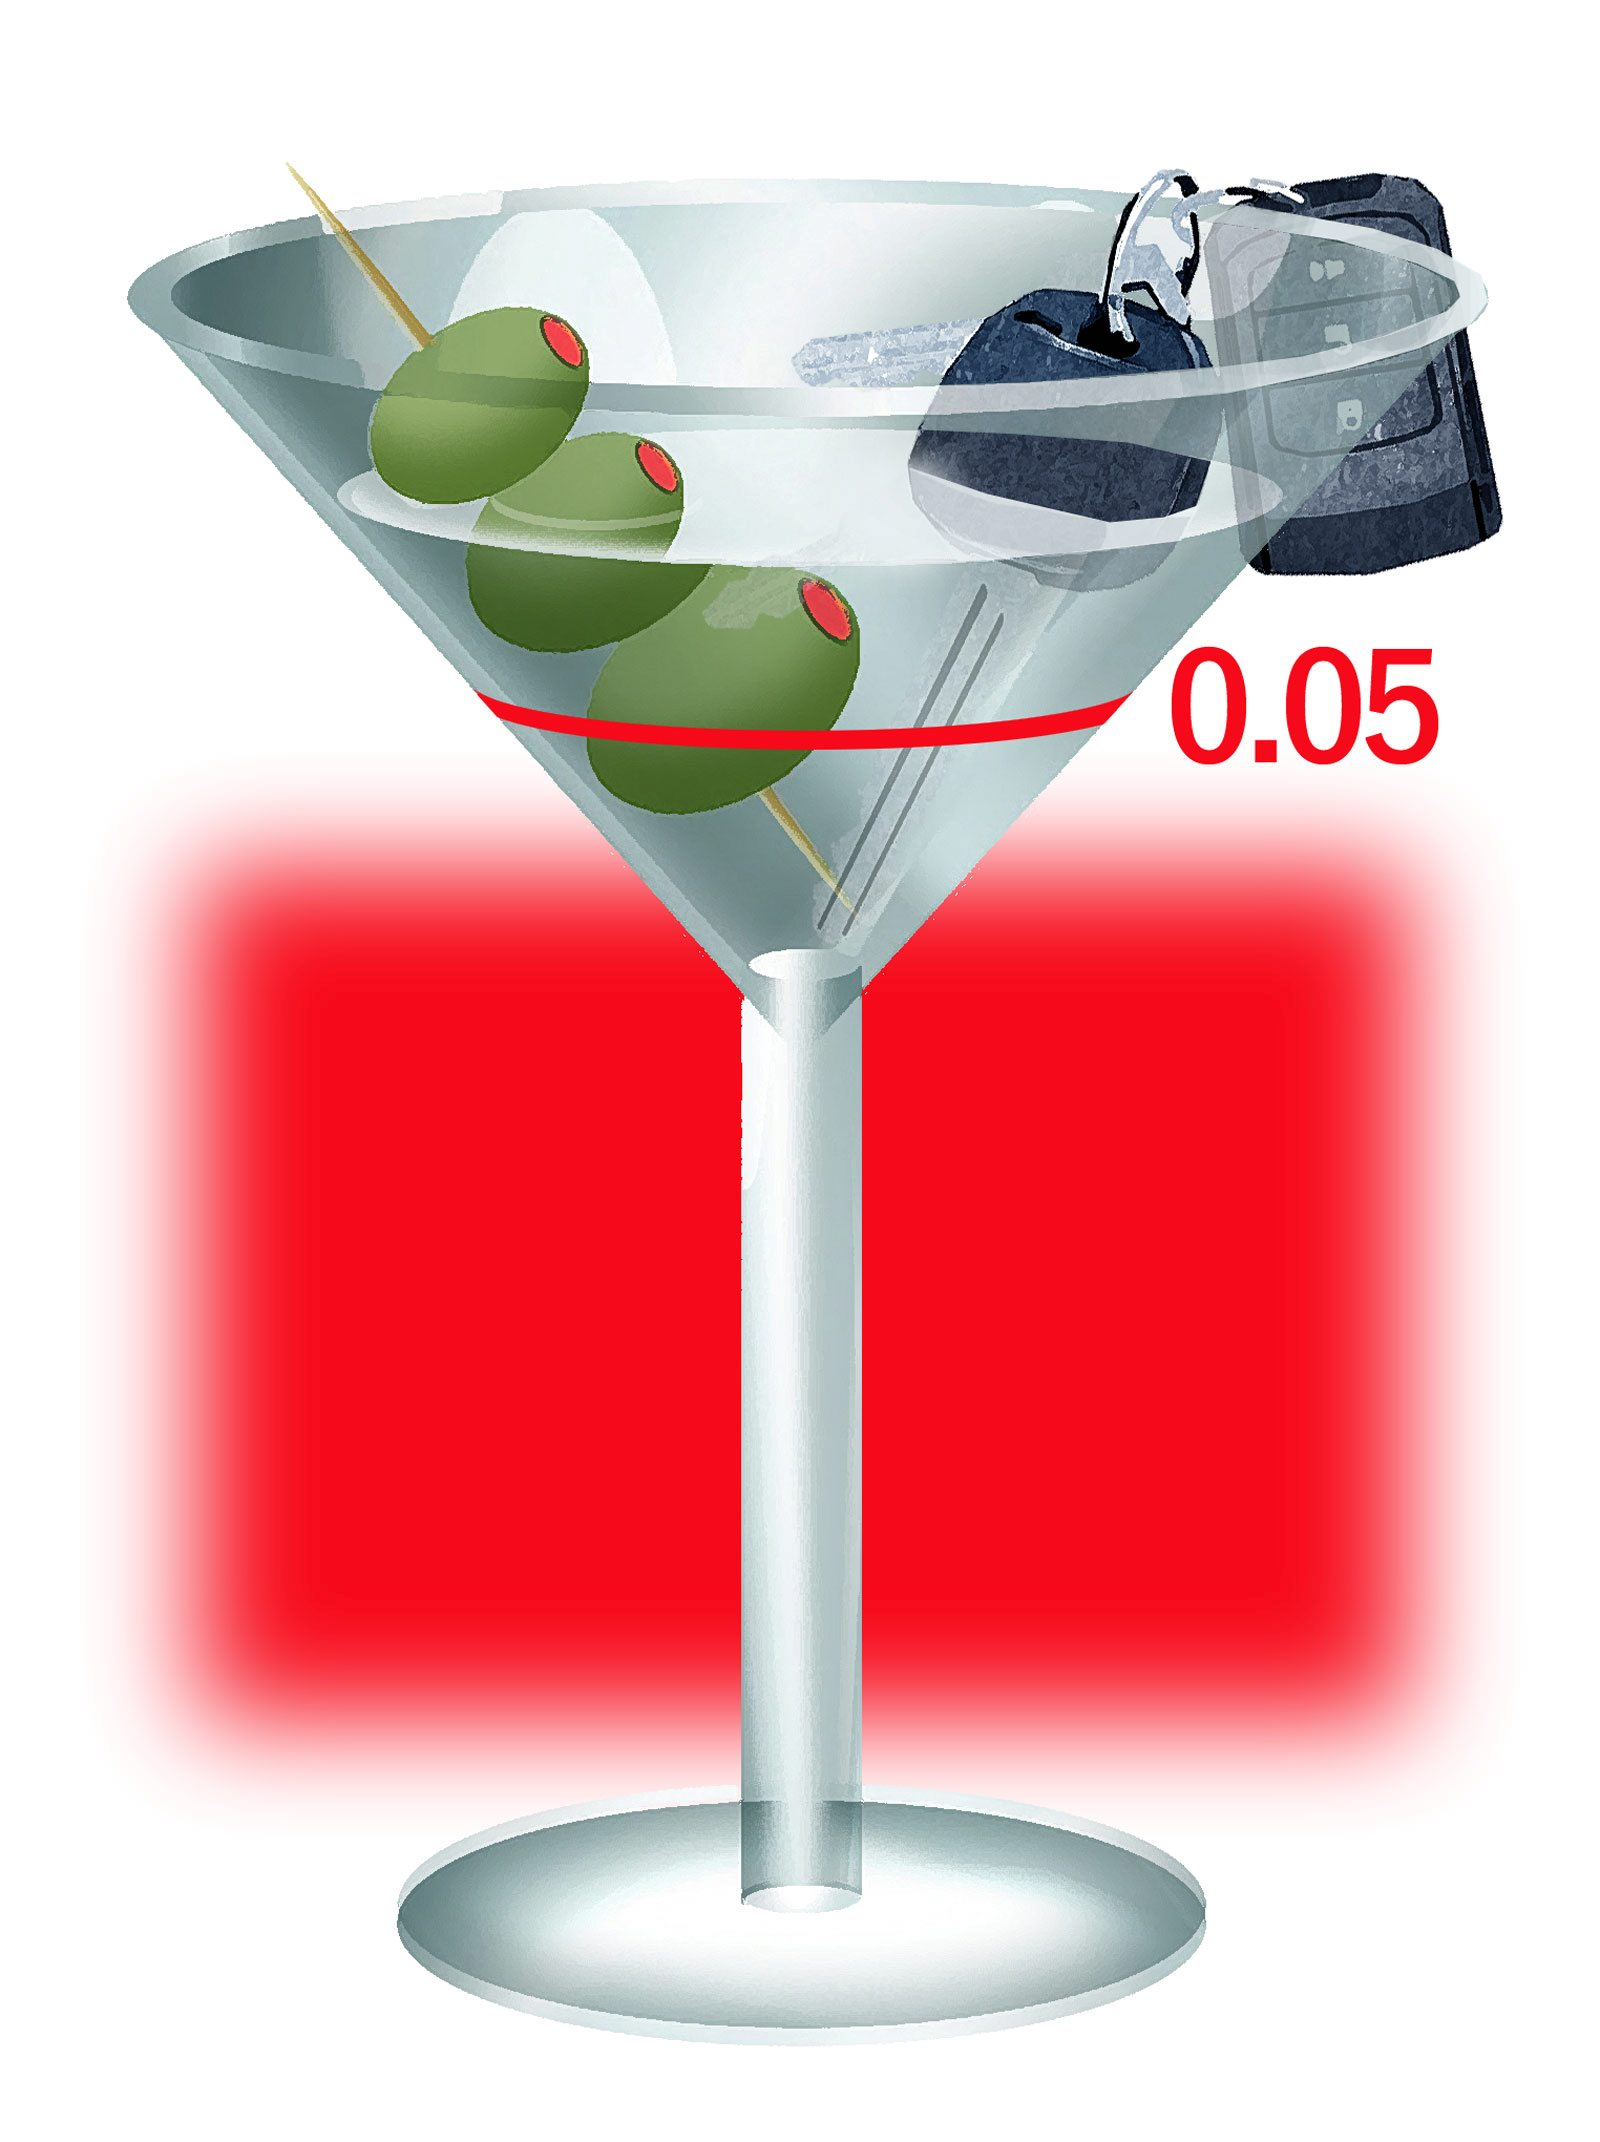 Lowering the legal alcohol level glosses over the problem